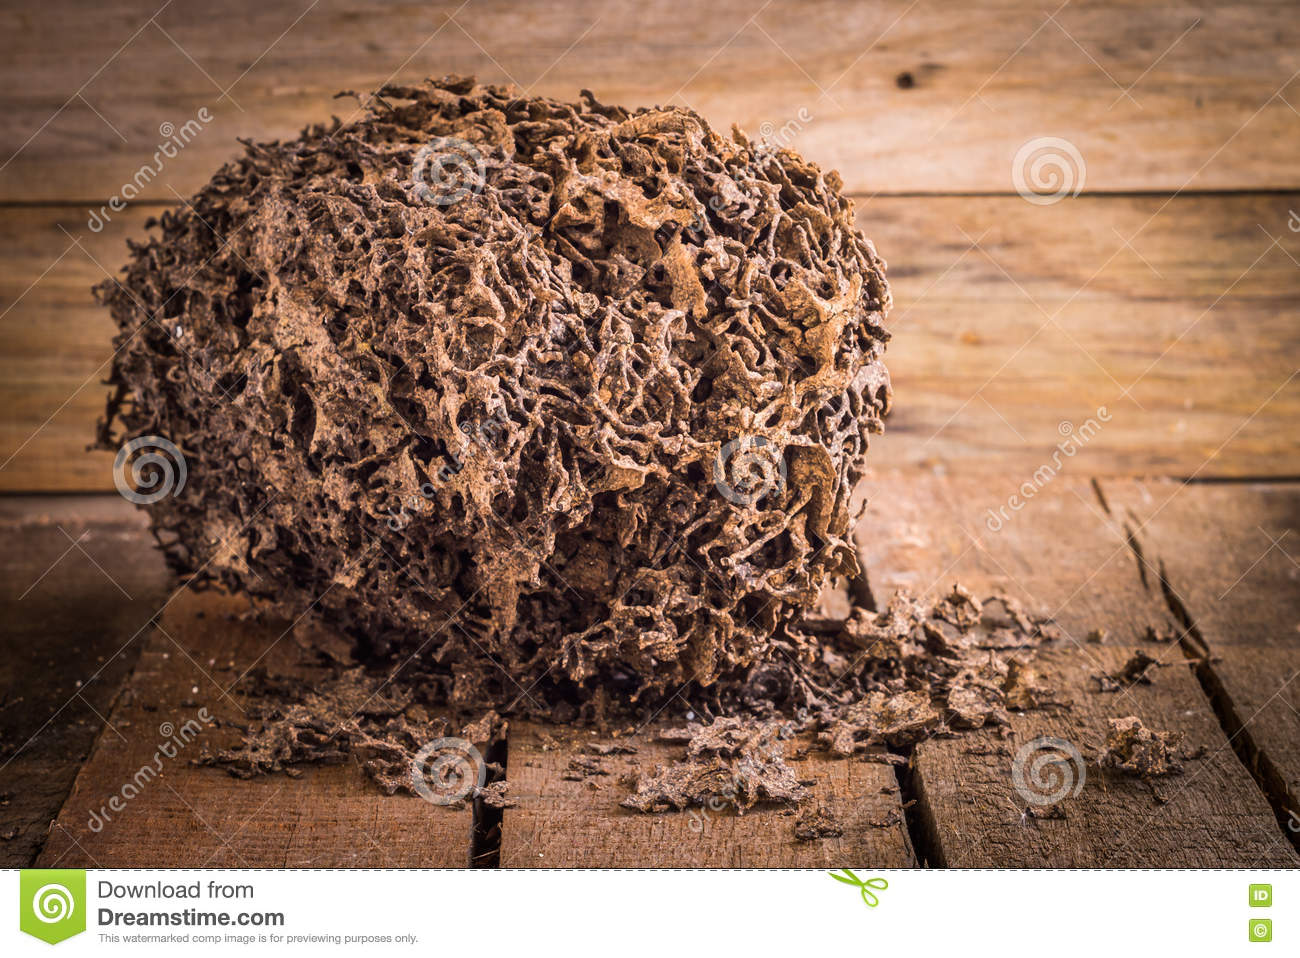 decay brown log destruction by termite stock image image of colony